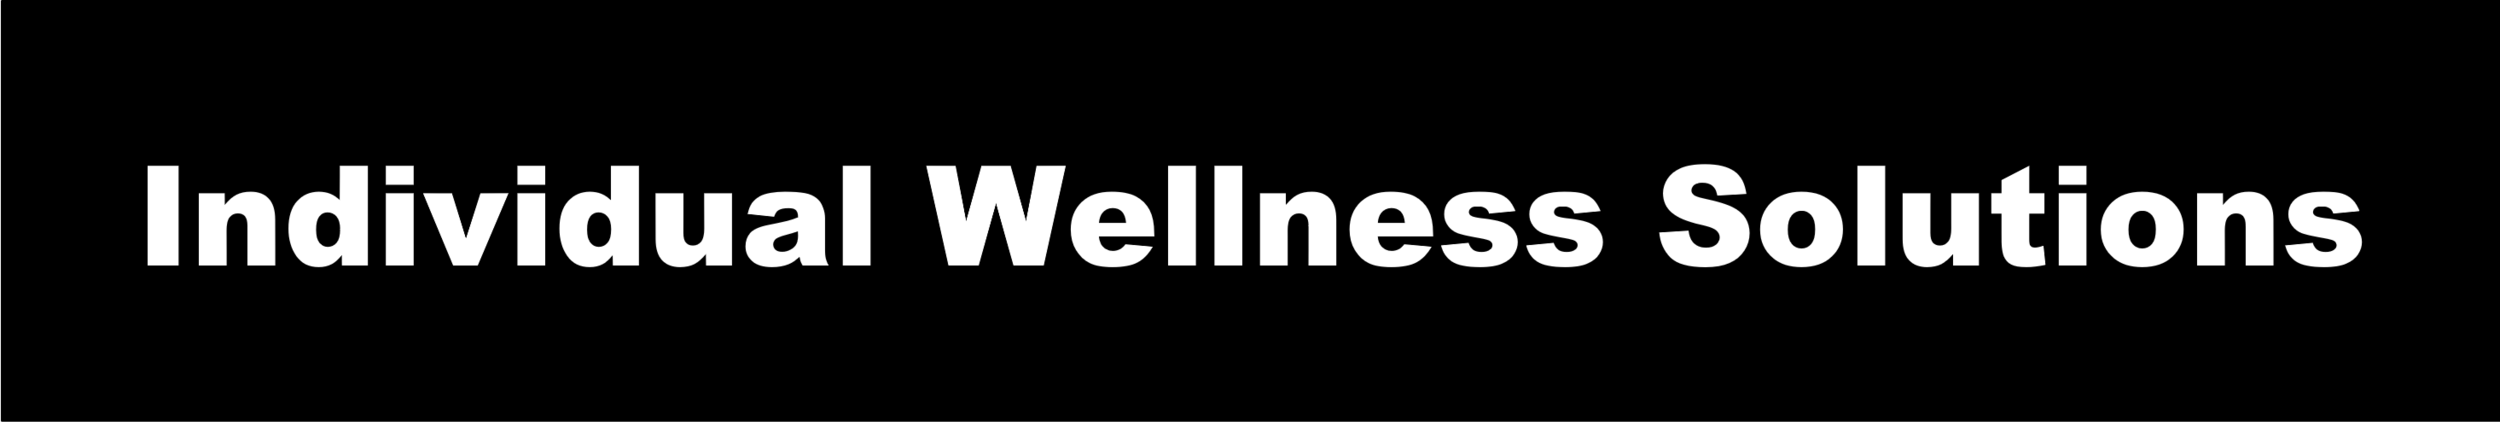 Individual Wellness Solutions page- banner.PNG